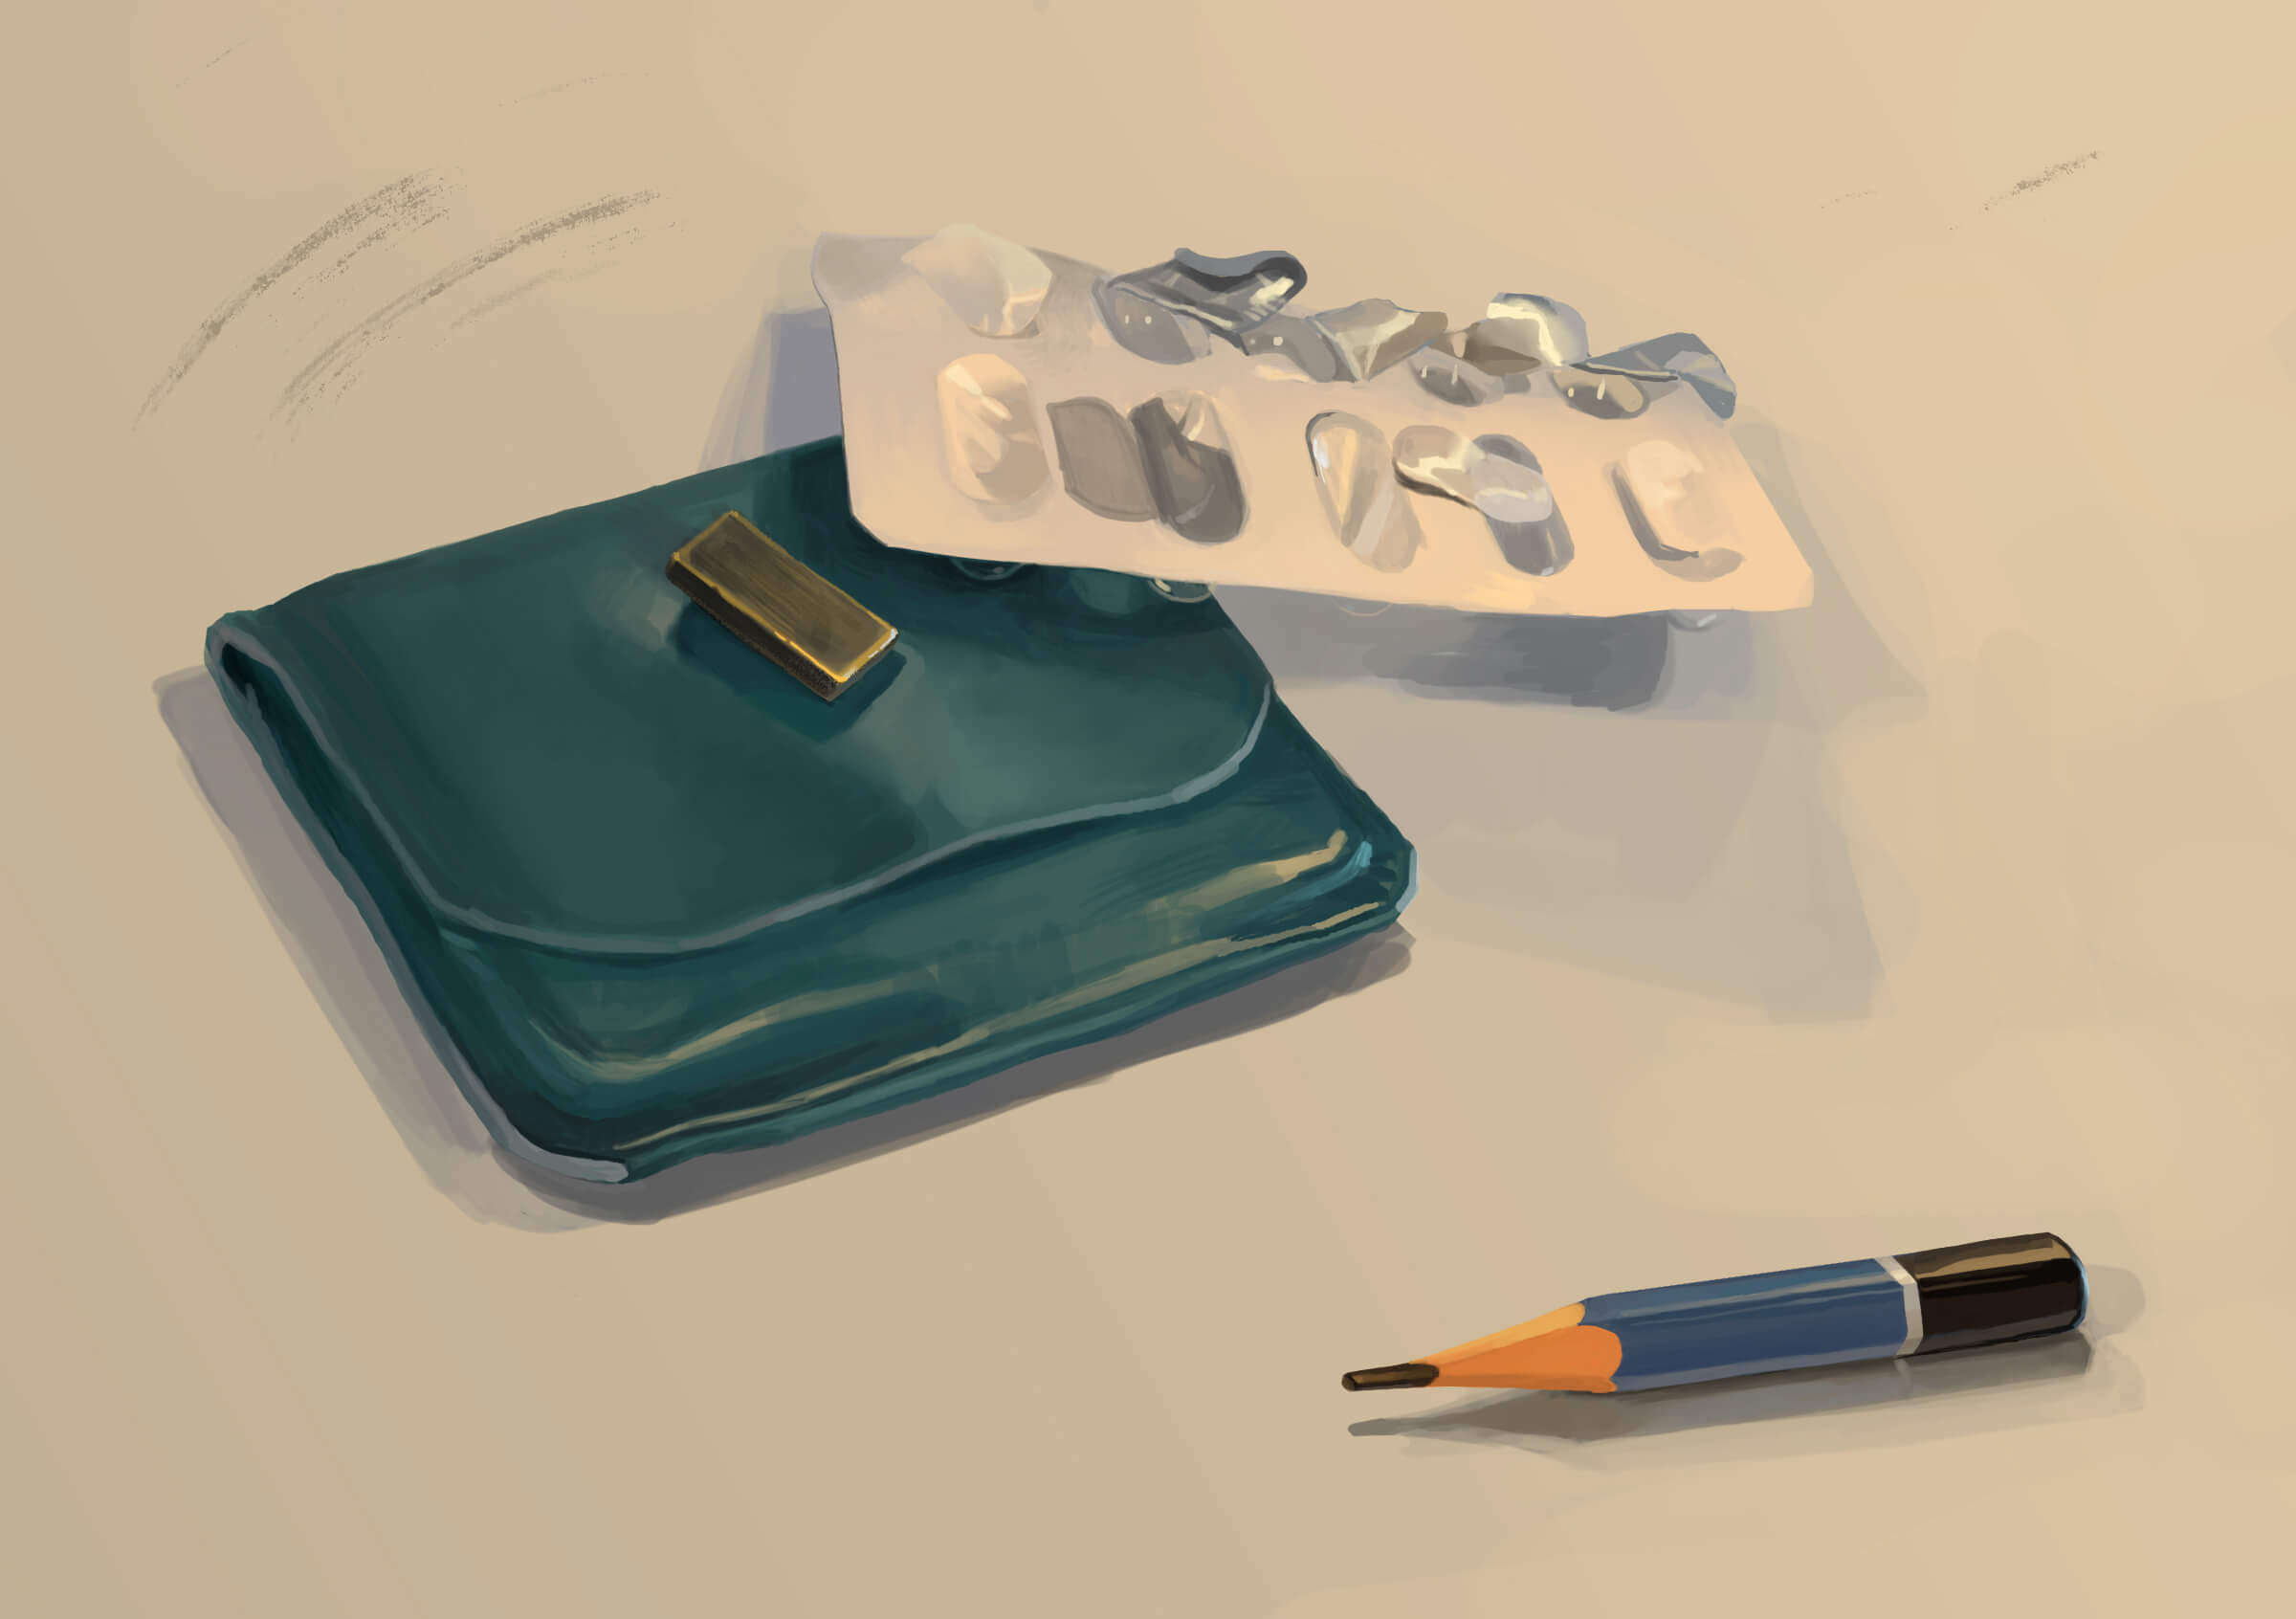 still-life traditional painting of a green wallet, a blister pack of pills, and a short pencil